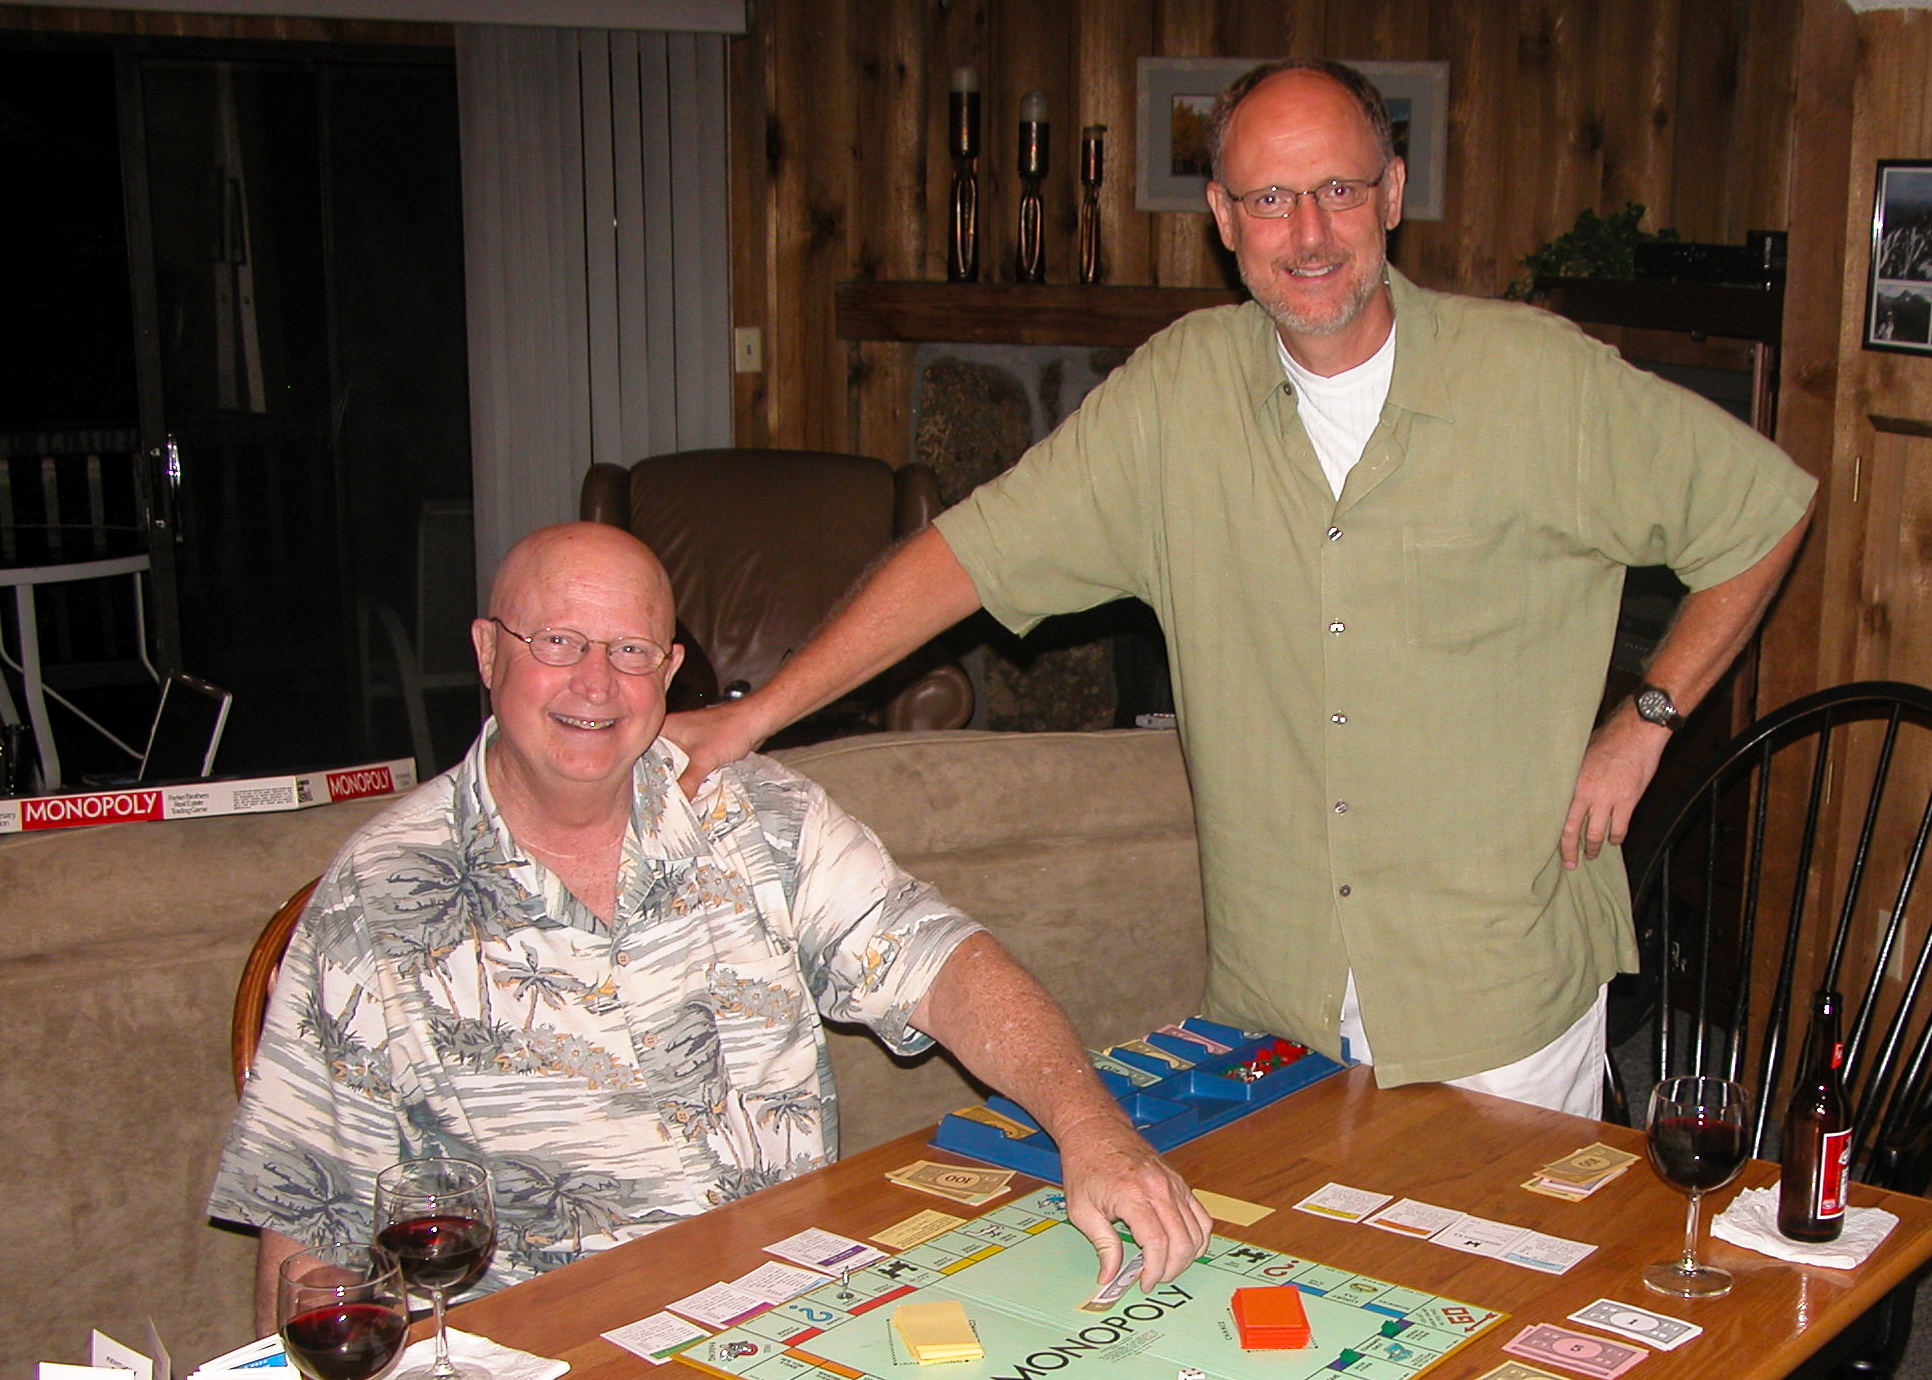 2006-Vail-Monopoly